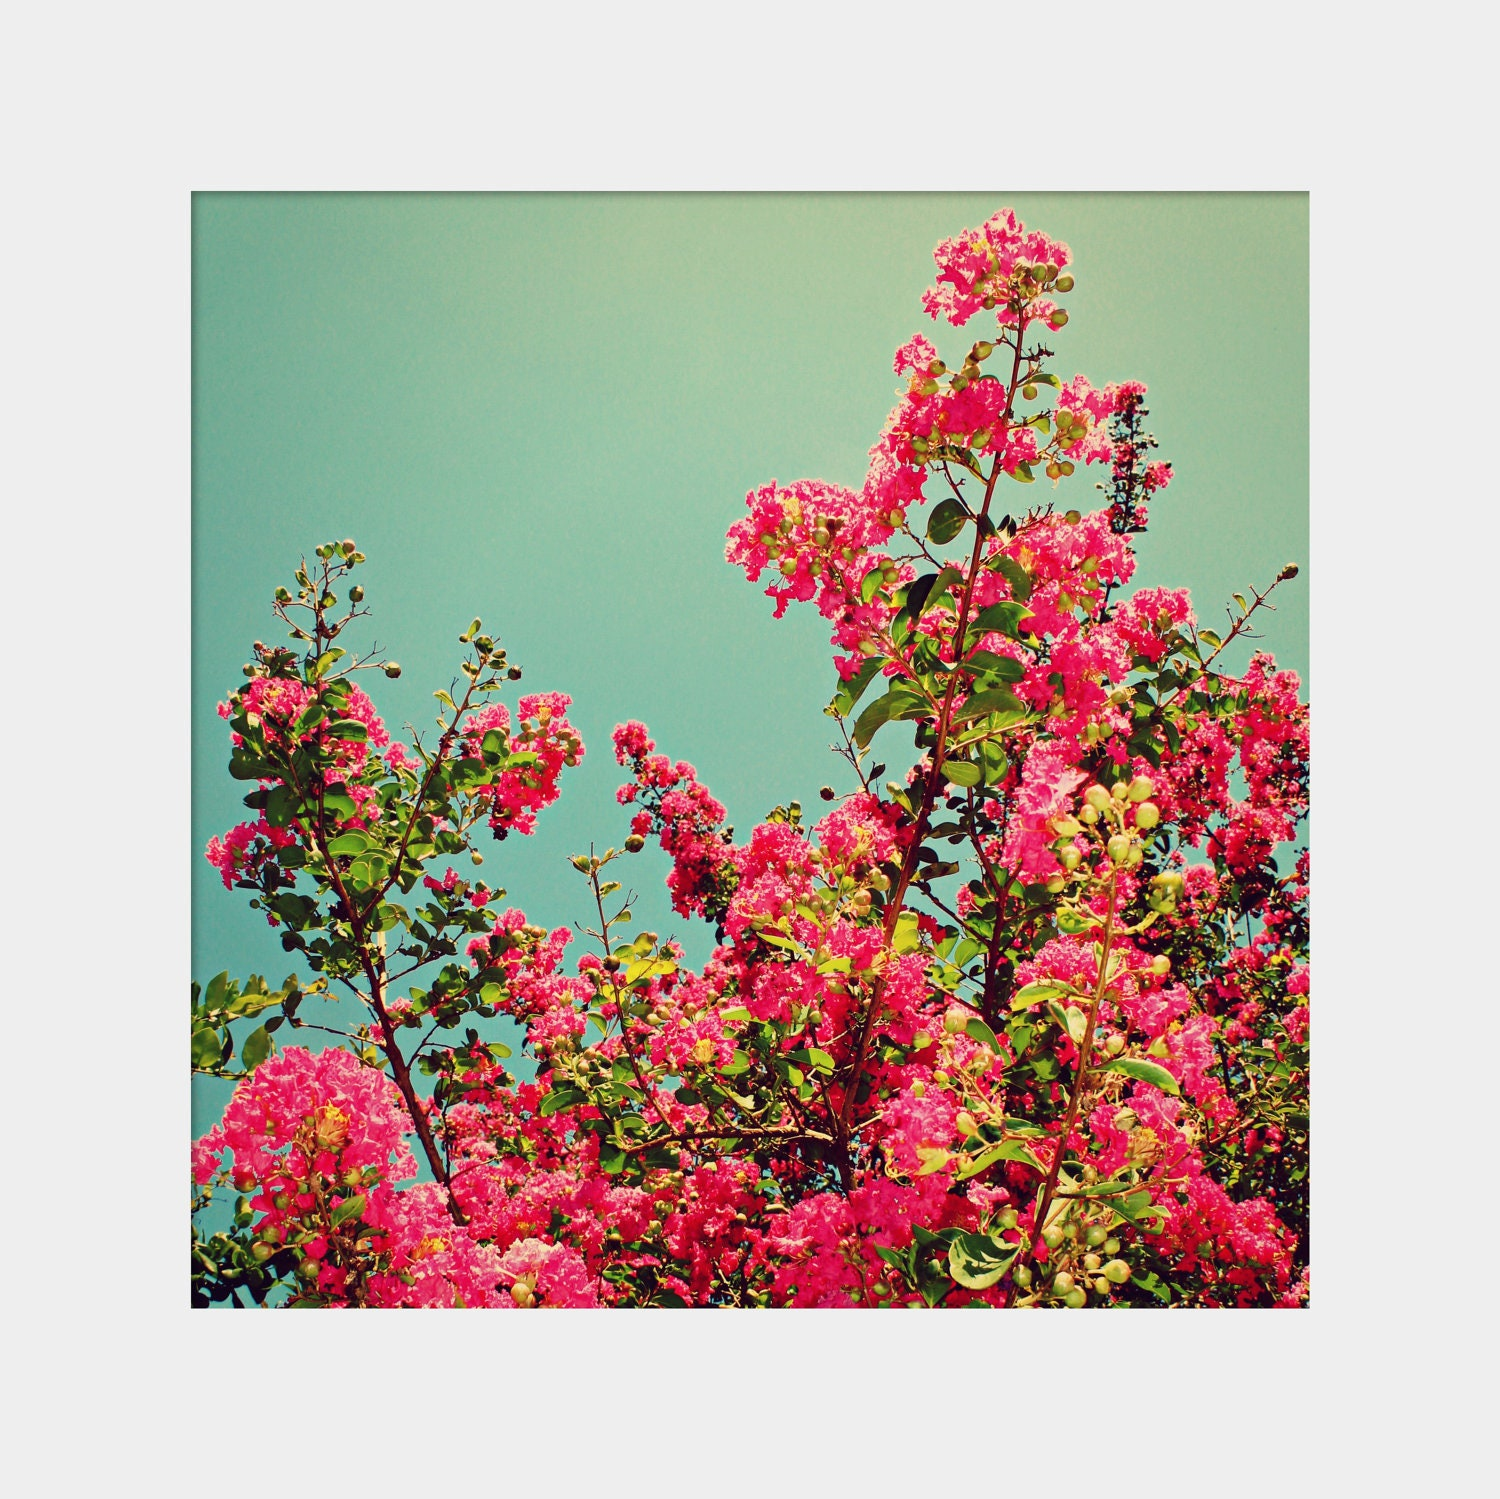 Crepe Myrtle: square fine art floral photograph print with pink blooming flowers and blue sky - UninventedColors